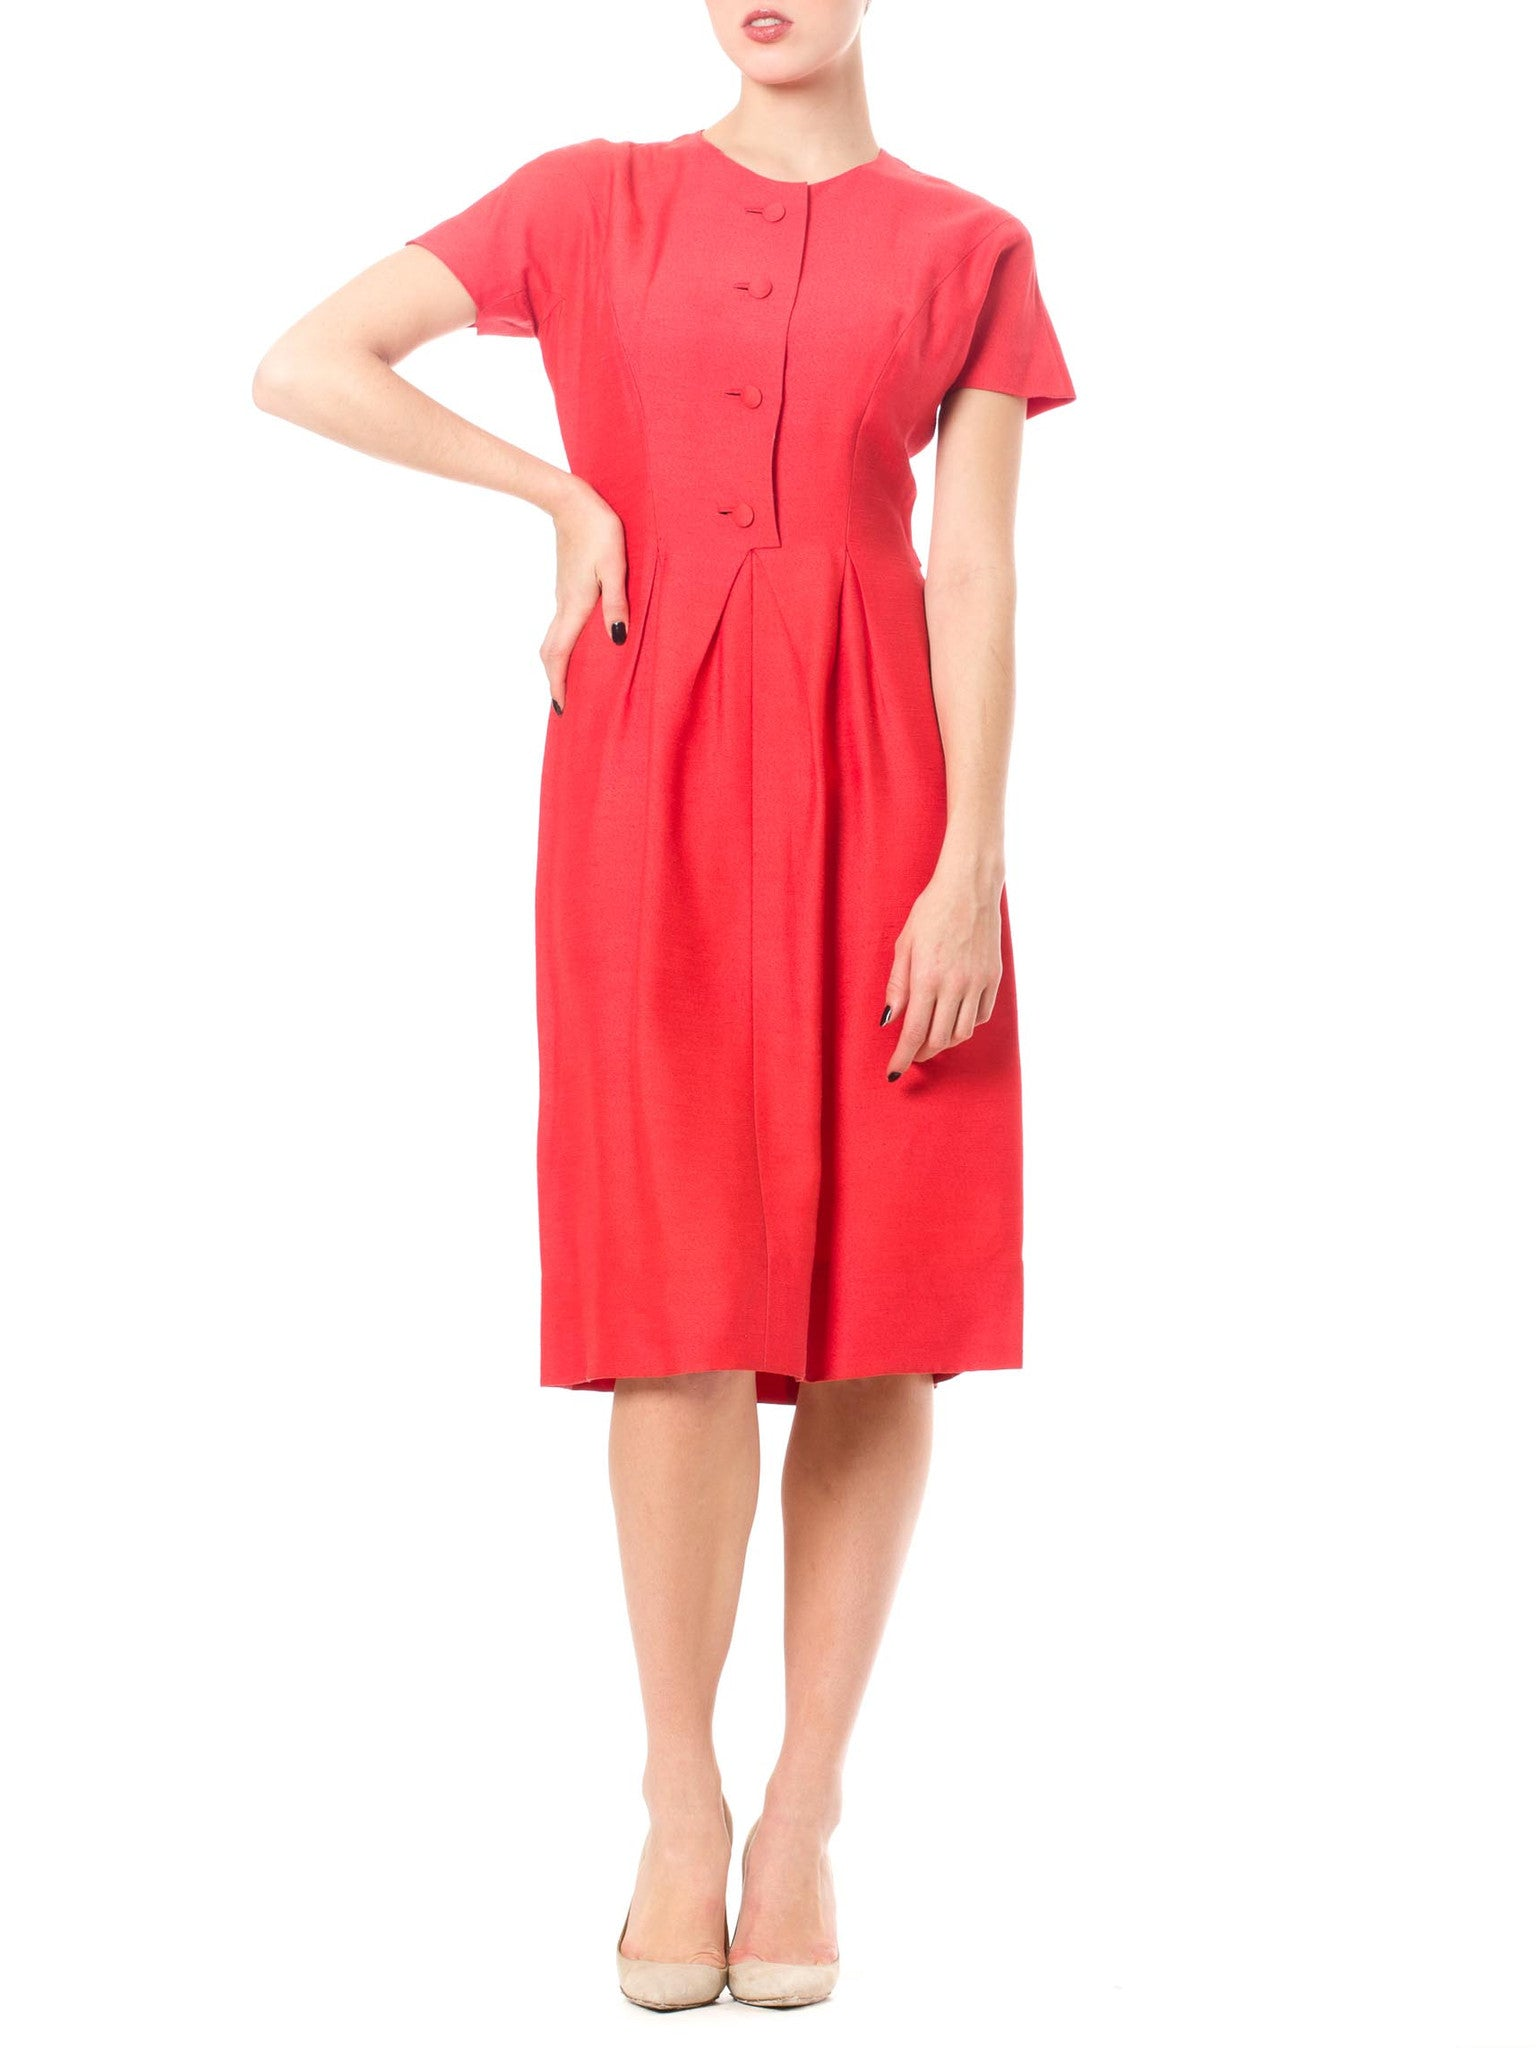 Bright Pink 1950's Vintage Maggy Rouff Dress